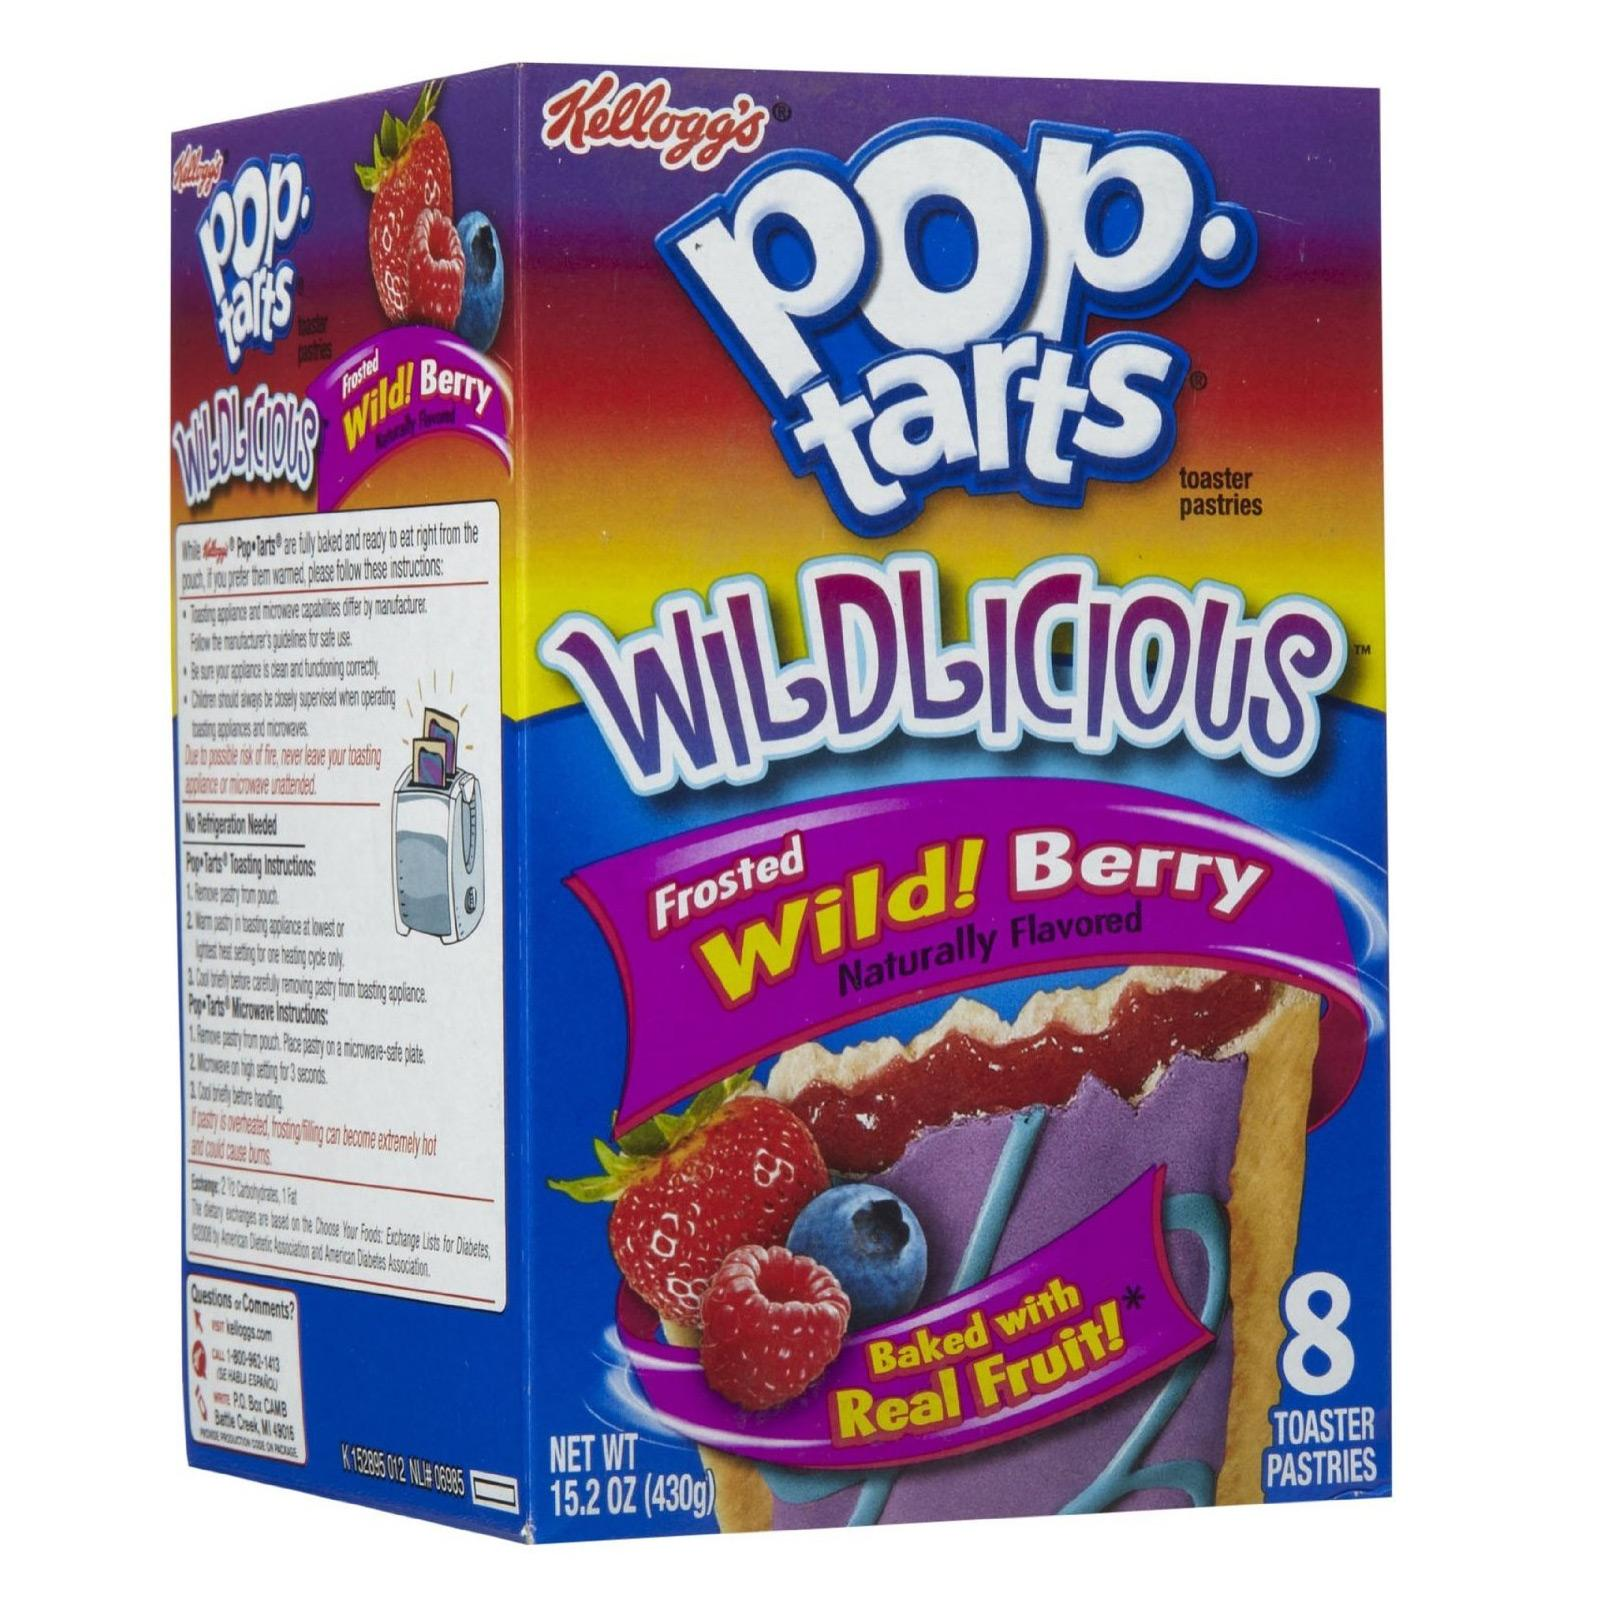 Kellogg's Pop-tarts Wild Berry Flavored Toaster Pastries